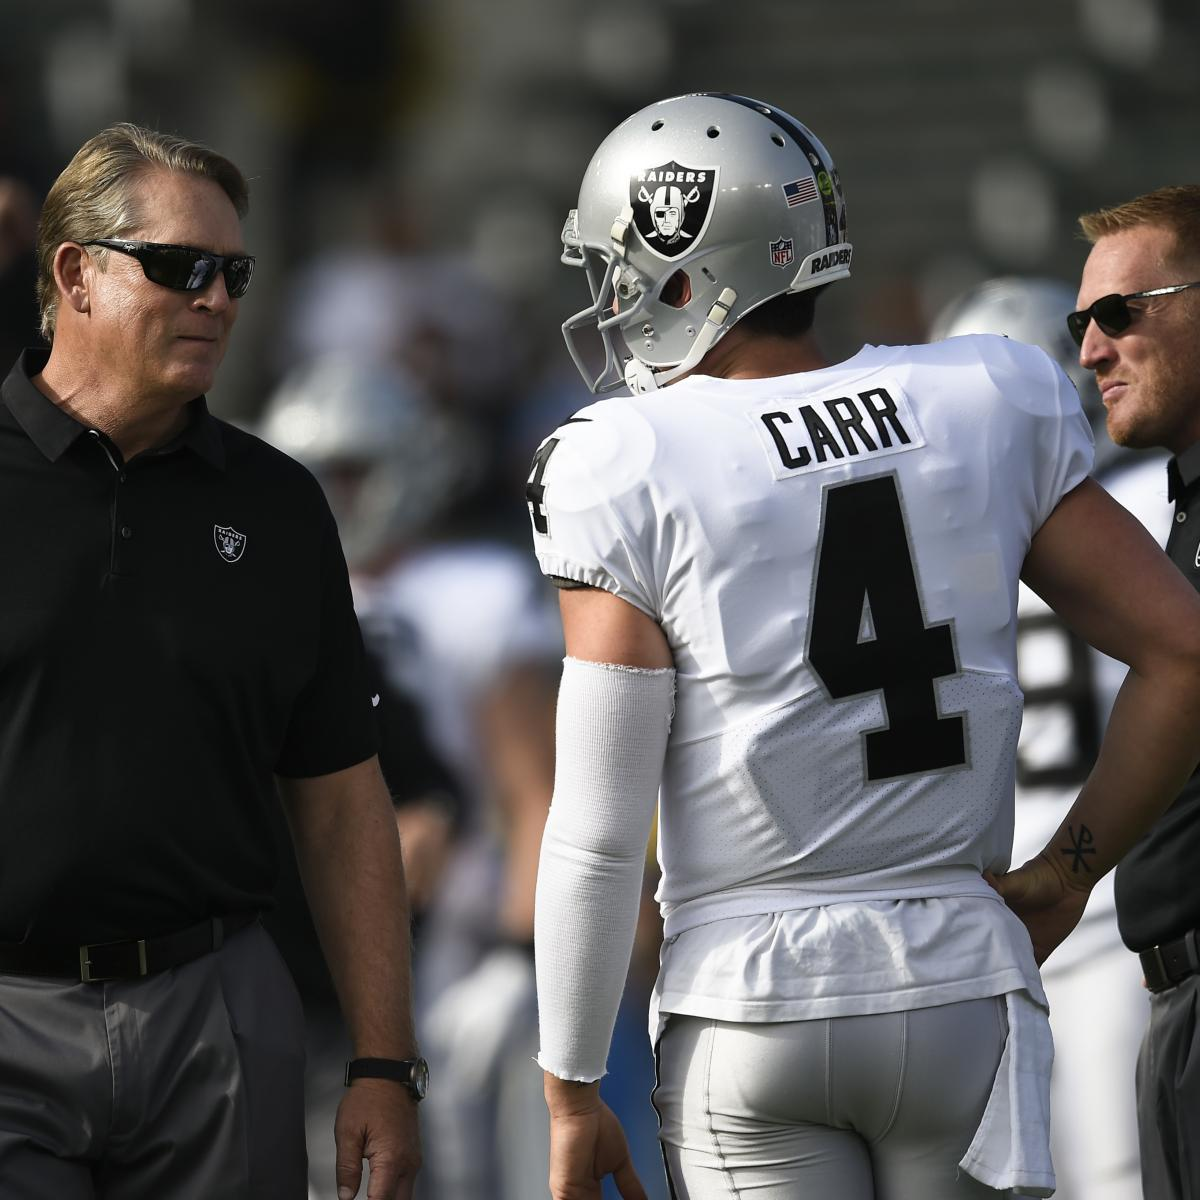 88ad81396 Raiders Coaching Staff Reportedly Turned on Derek Carr During Loss vs.  Chiefs